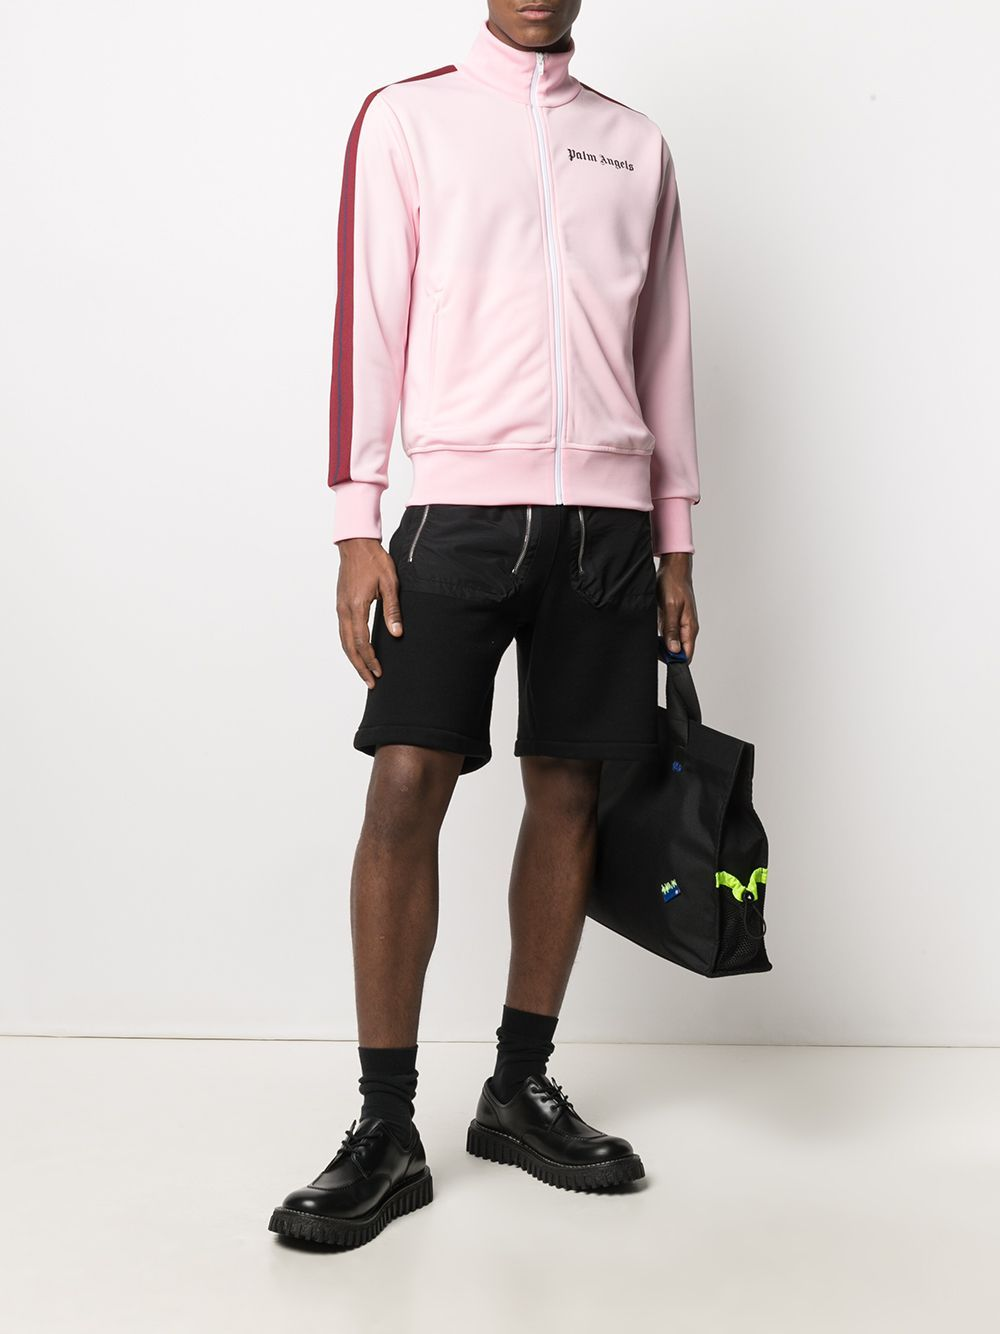 PALM ANGELS Classic Track Jacket Pink